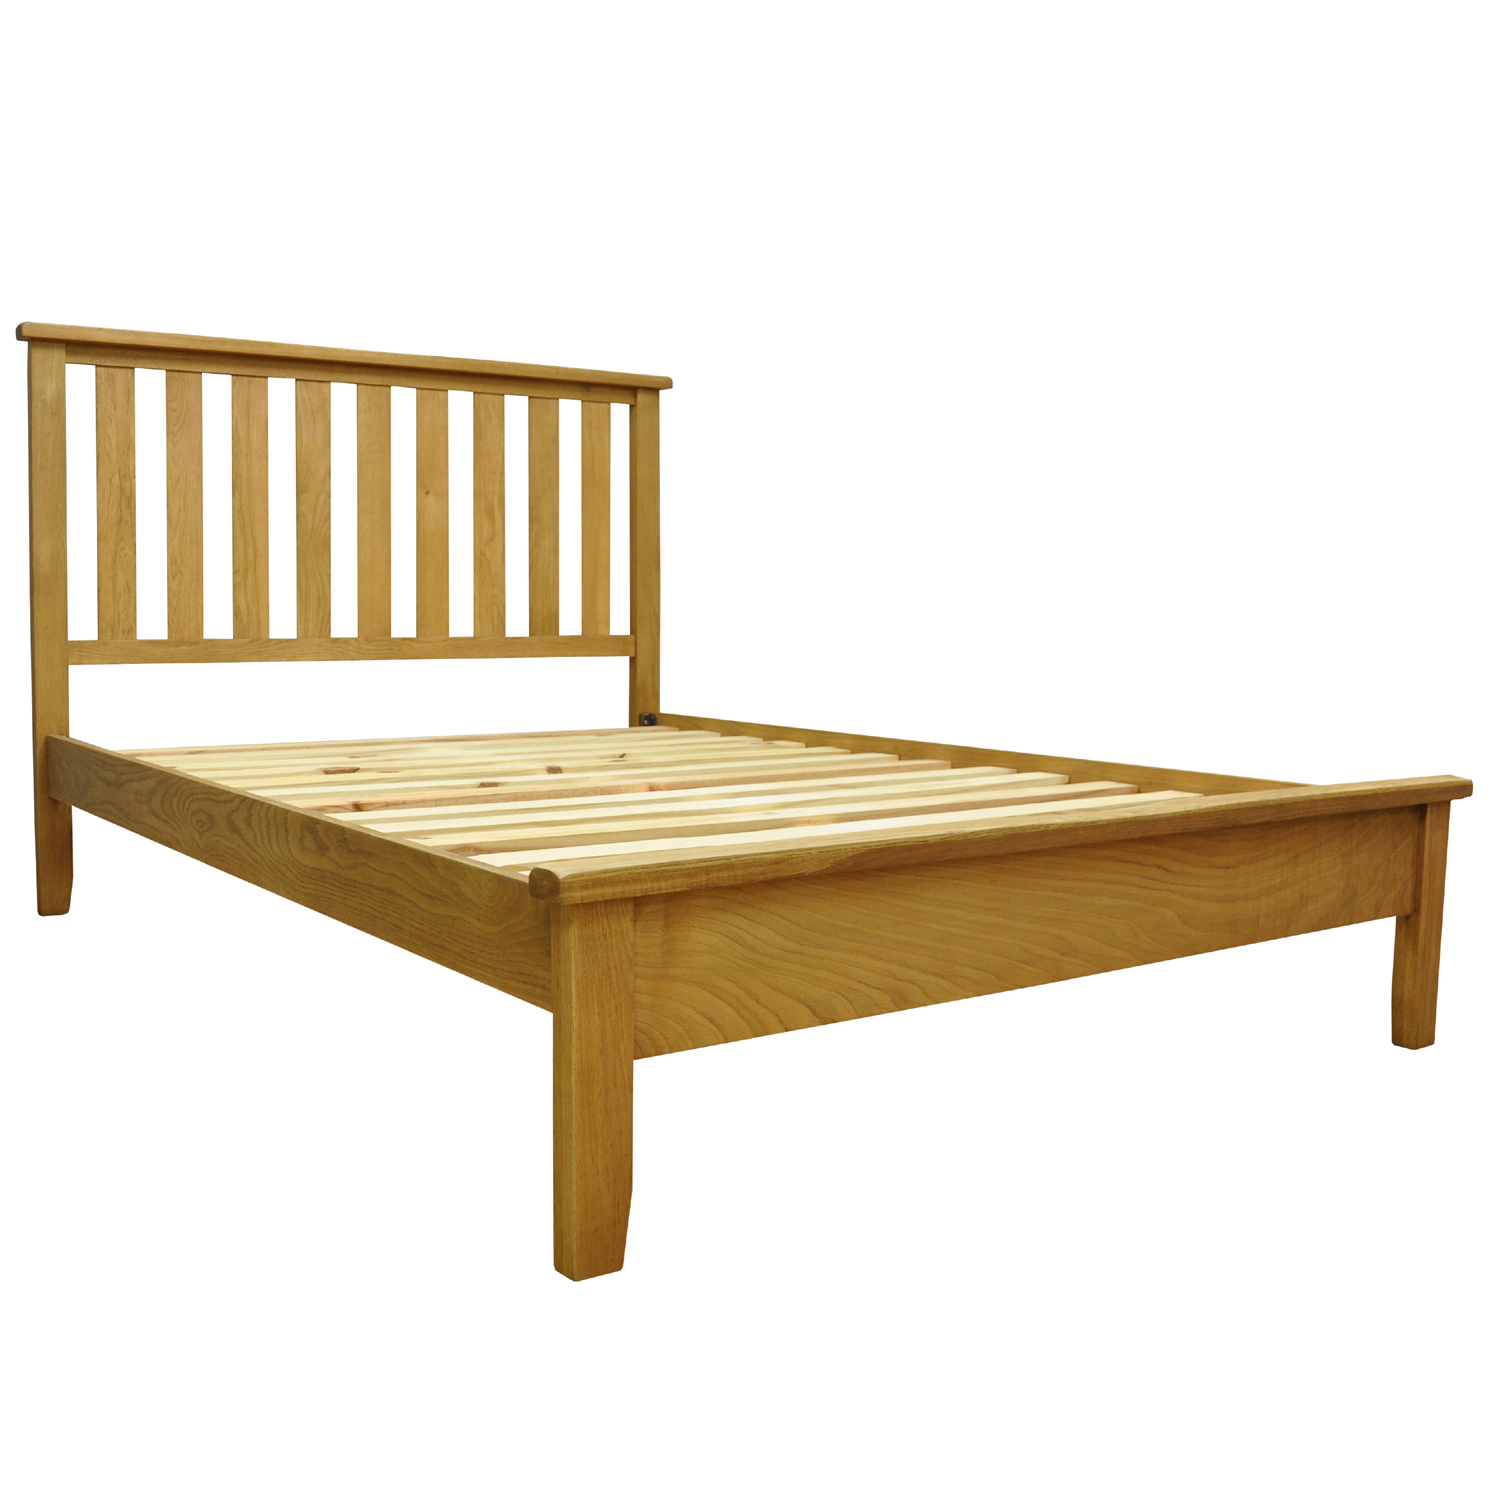 Stockholm Waxed Oak Finish Bed - Online Bed & Mattress Store: Shops ...